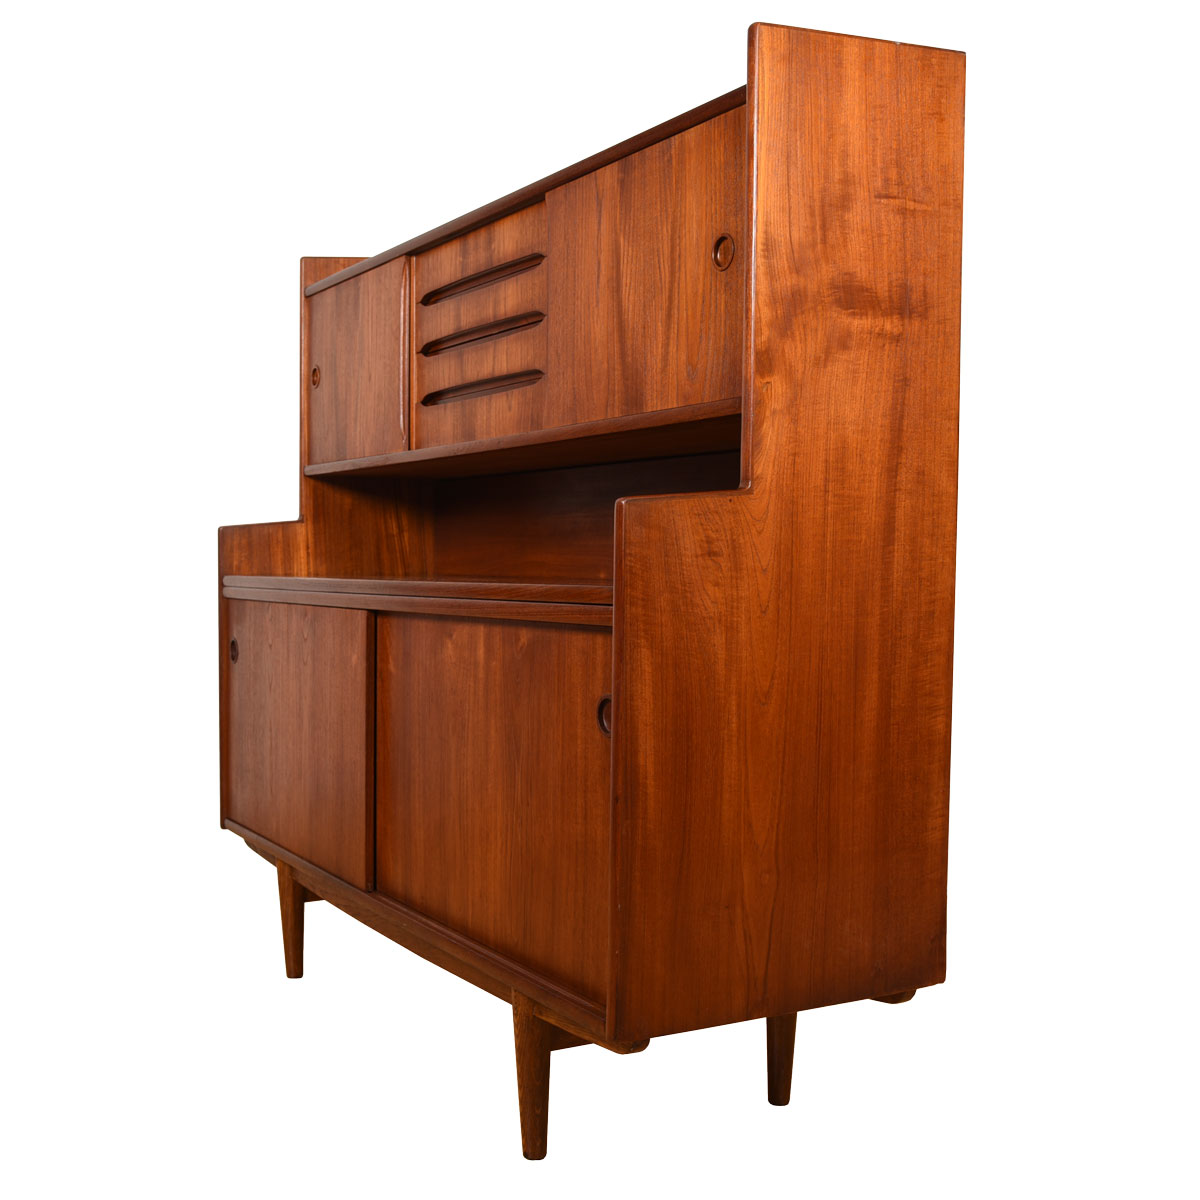 Danish Teak Petite Highboard Cabinet w/ Pull-Out Serving Shelf